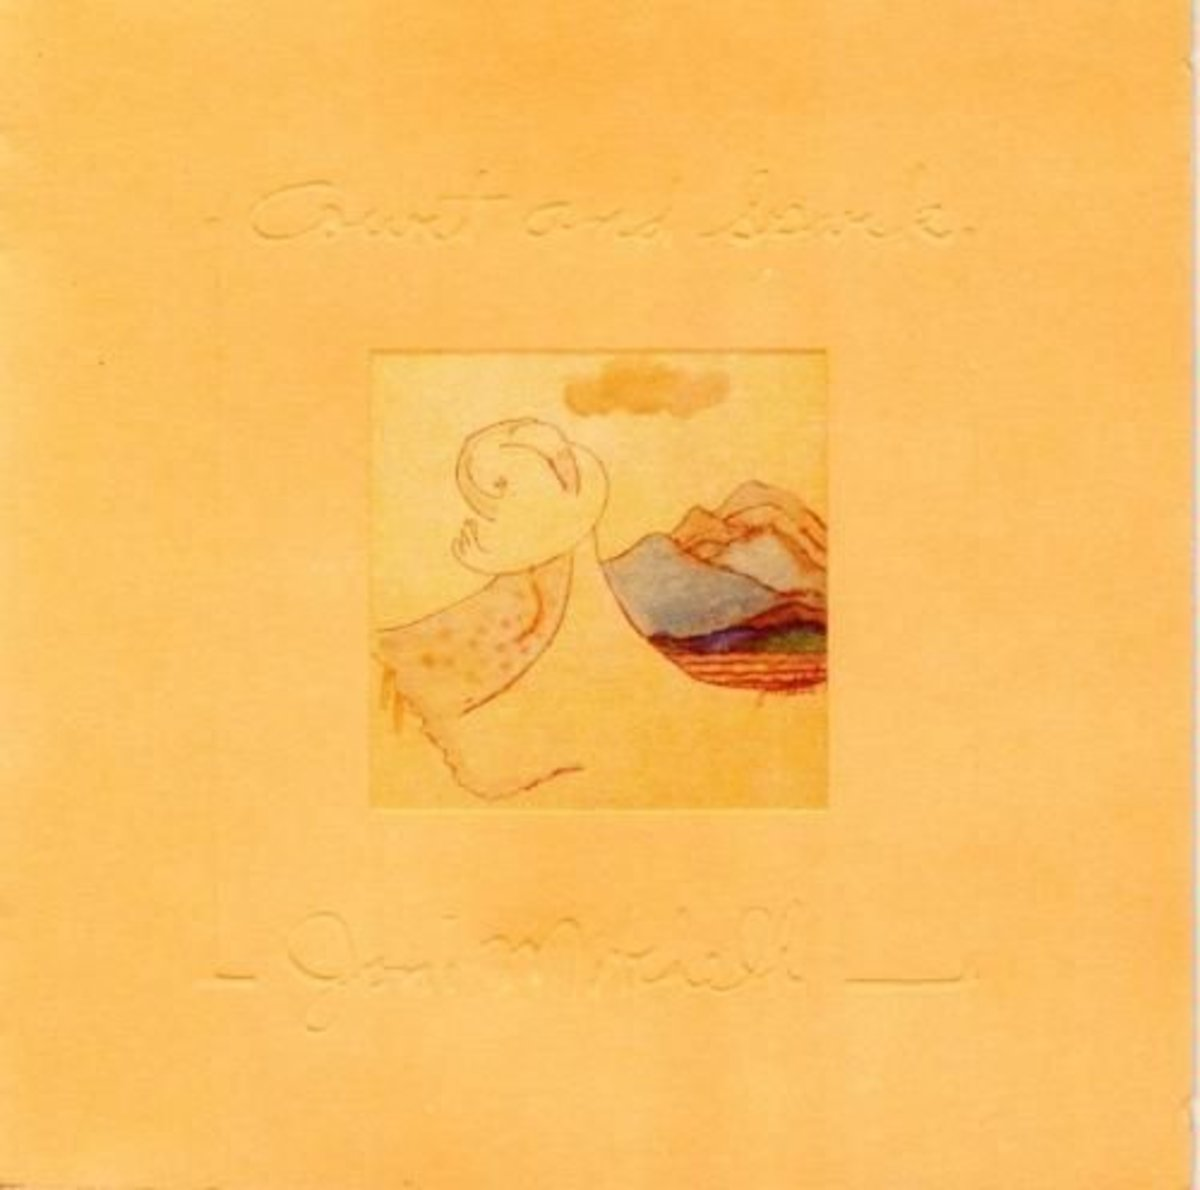 Court And Spark Joni MItchell best albums #6